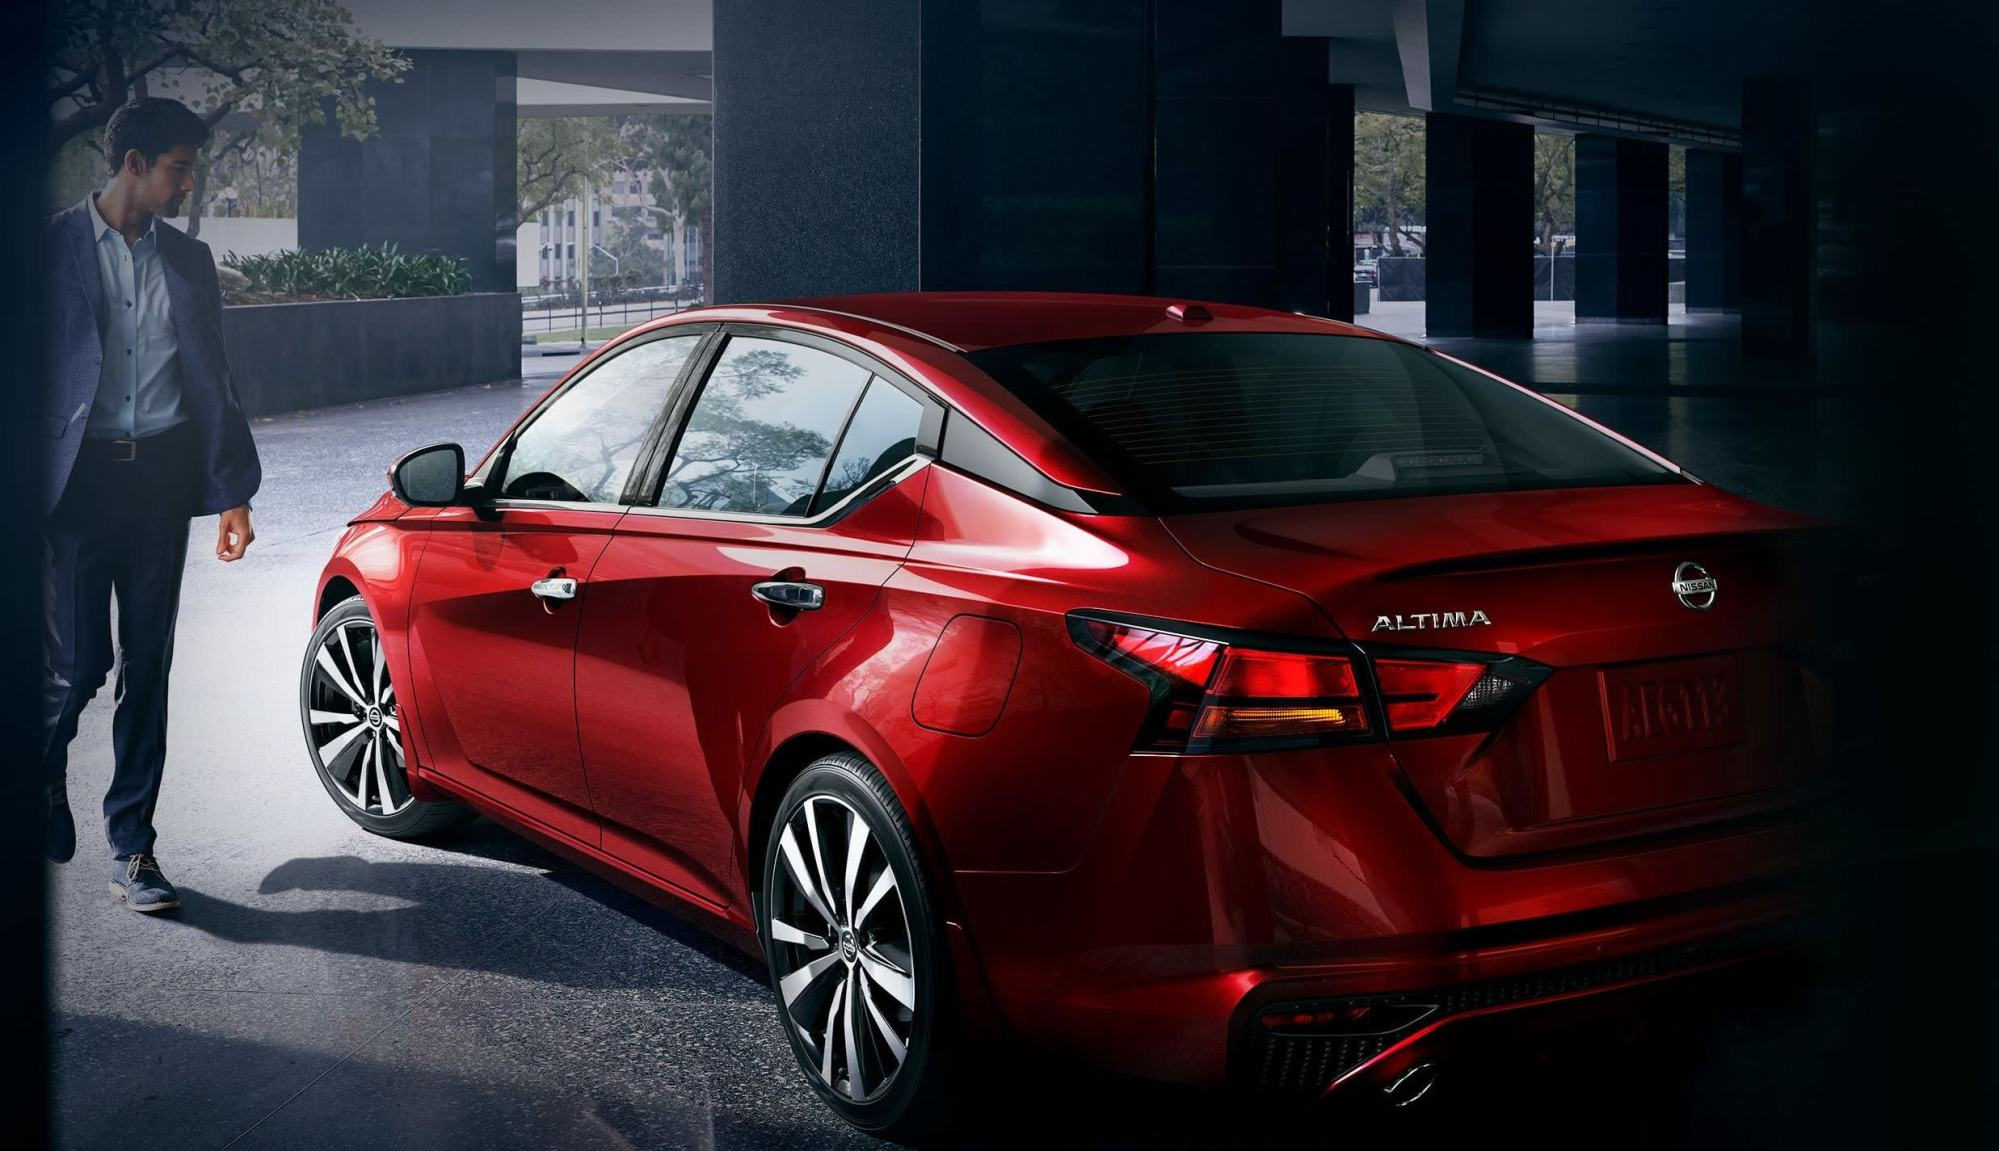 hight resolution of  electrical wiring diagram ac rouge on 2019 nissan altima for sale in elk grove ca nissan of elk grove on